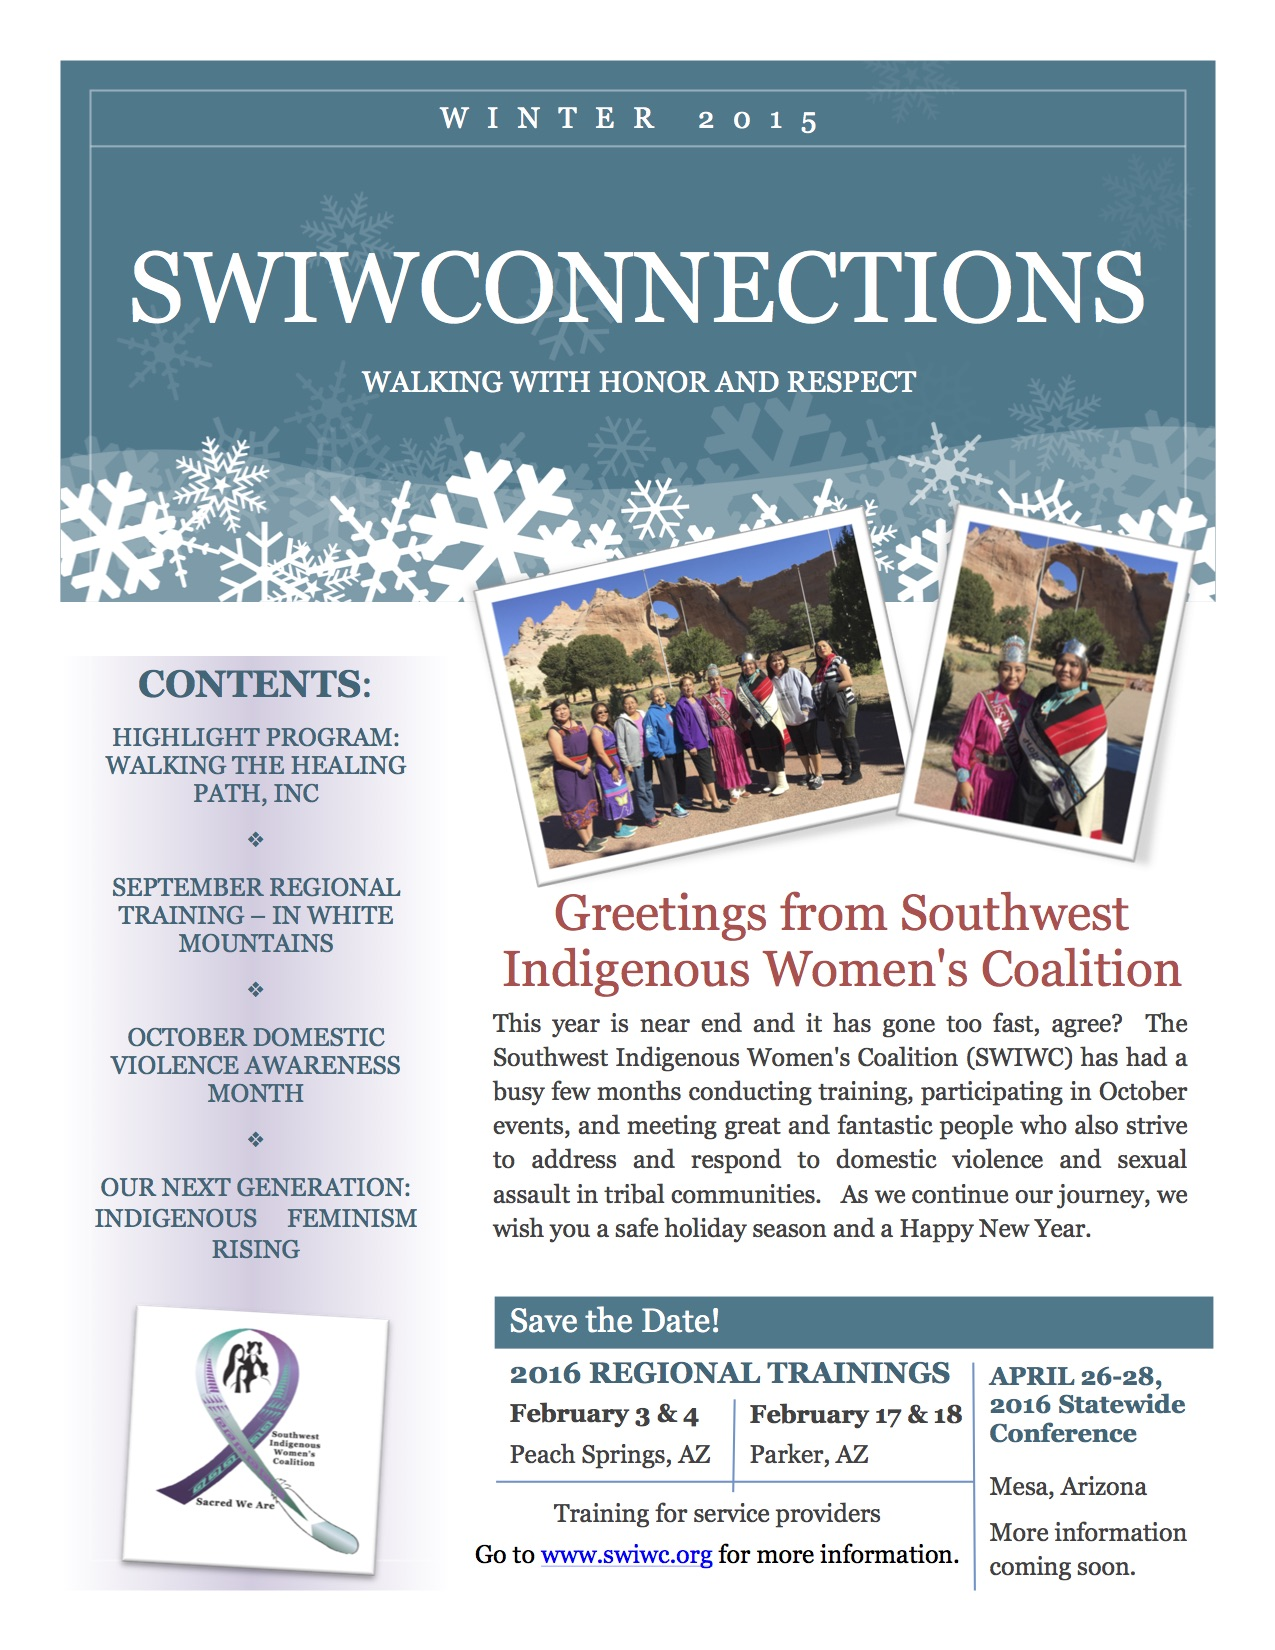 SWIWCONNECTIONS WINTER